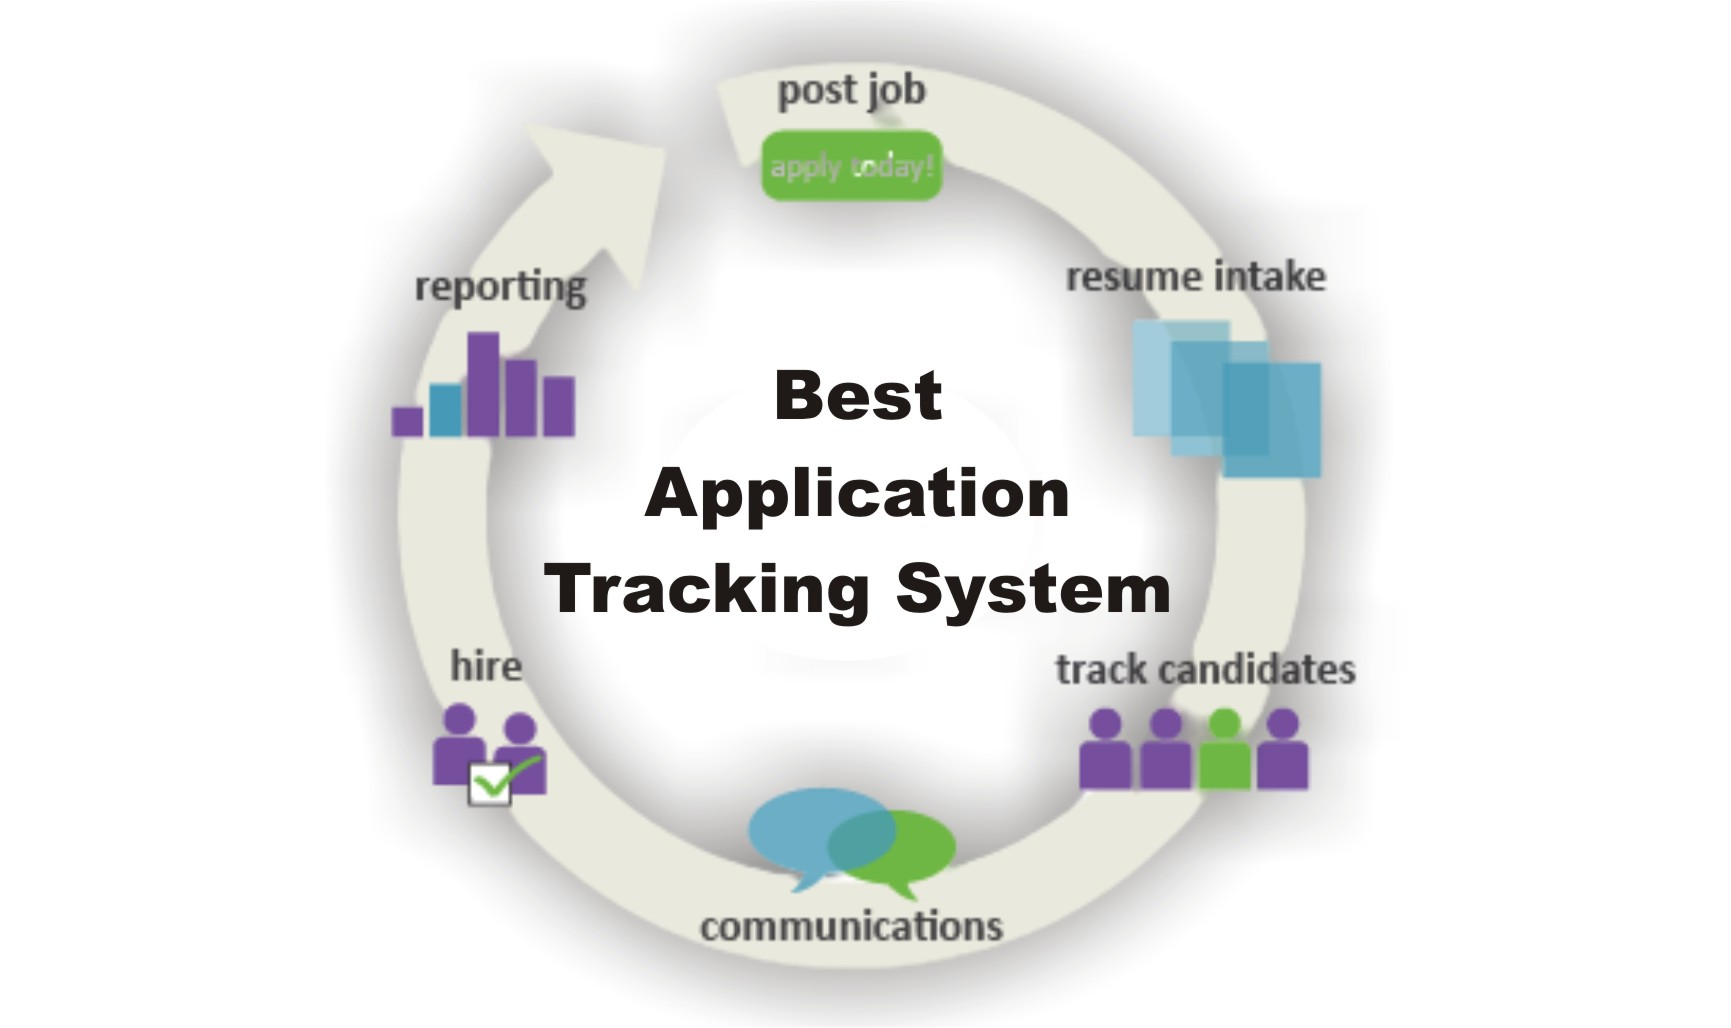 Best Application Tracking System